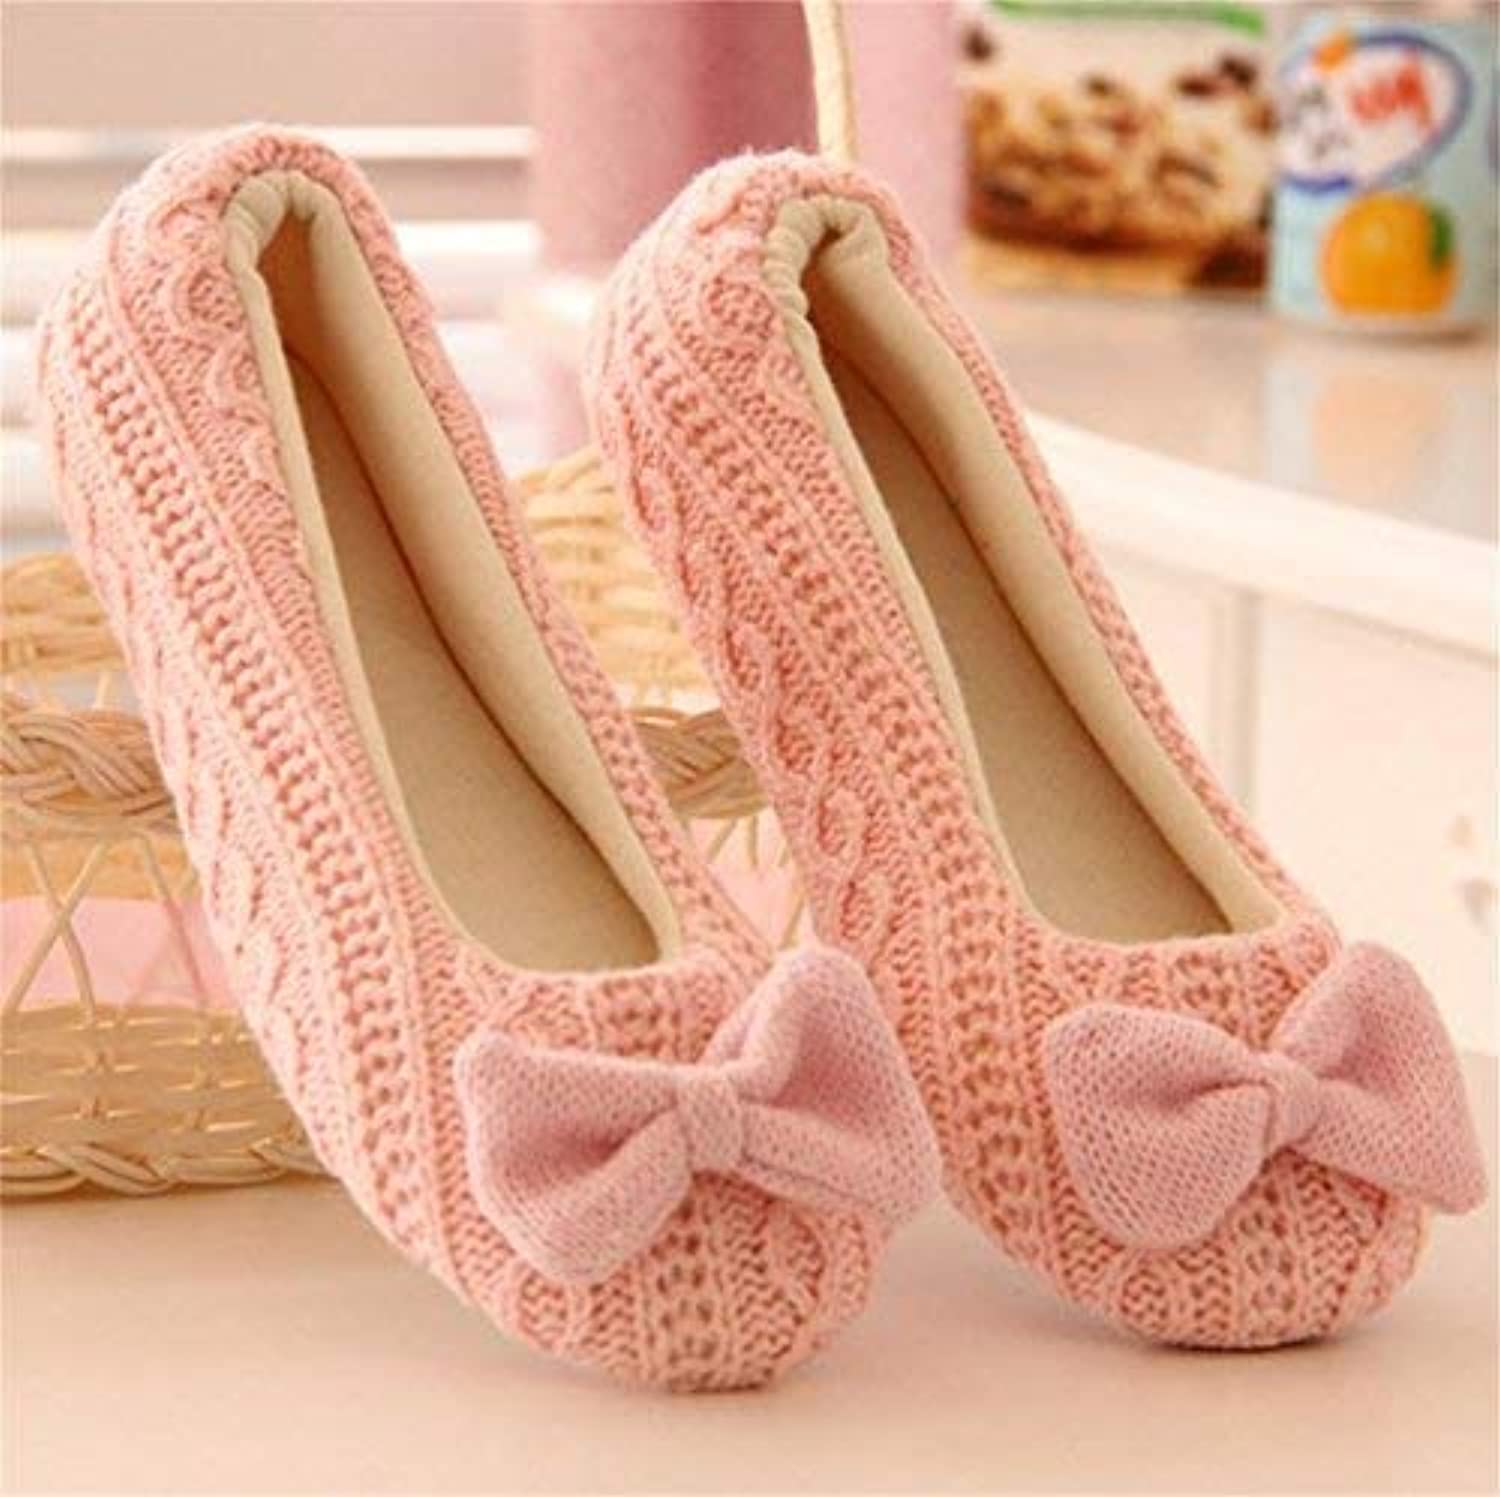 Lady Slippers Women's Home Slippers Indoor Warm Leisure Knitting Bow Decoration Pink Solid color Girlish Casual Cute Slippers Nude shoes